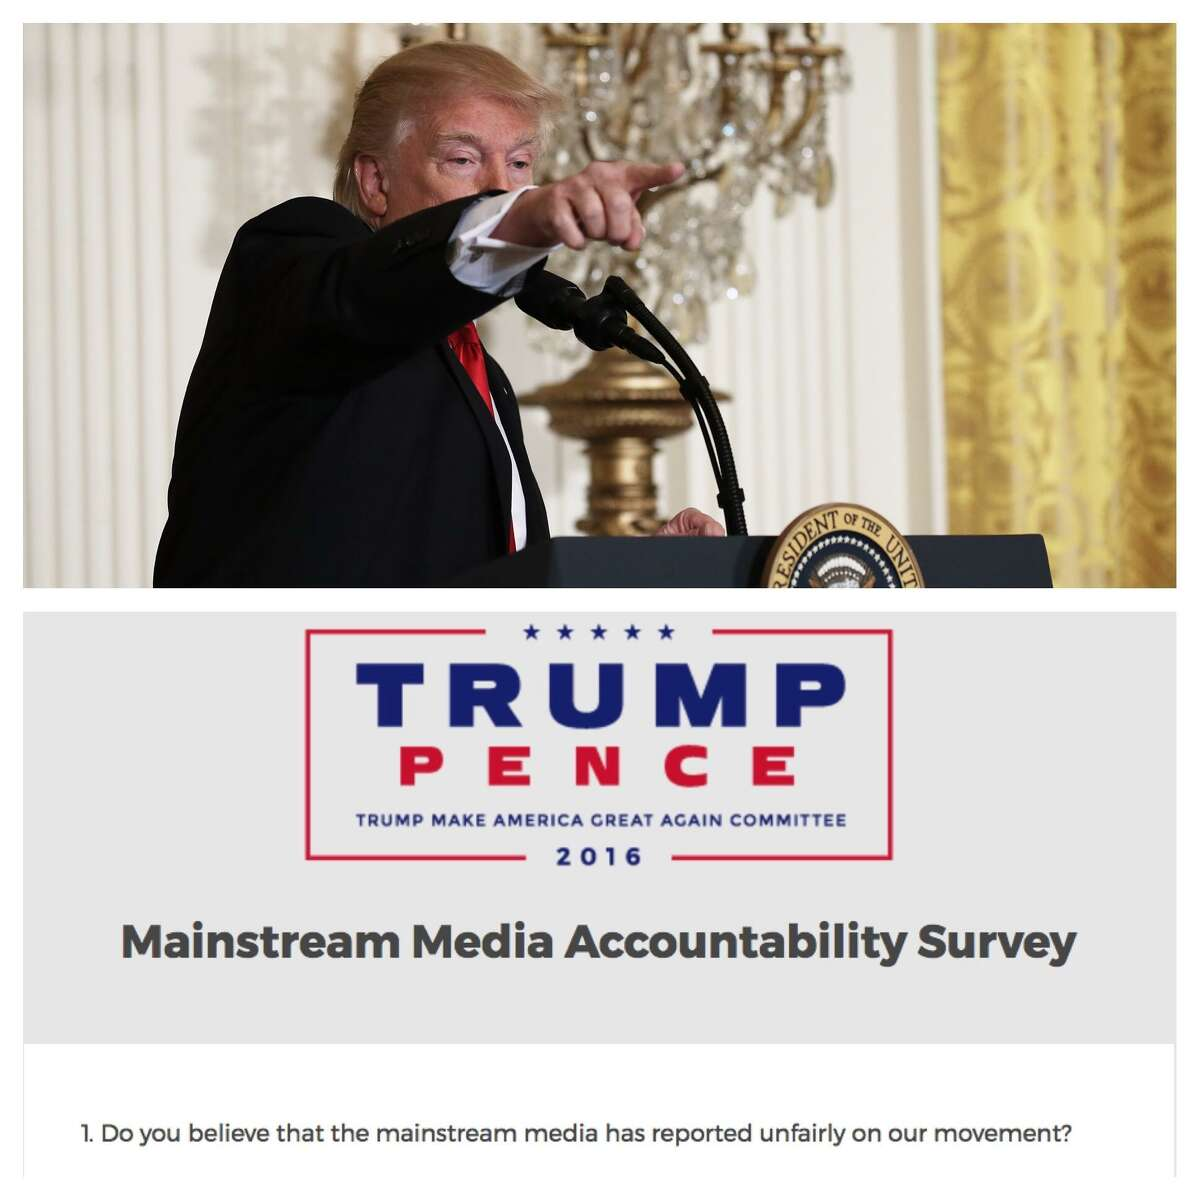 Minutes after President Trump concluded his press conference Thursday, his fundraising committee sent out a 'mainstream media accountability survey.' Click ahead to read some questions from that survey.